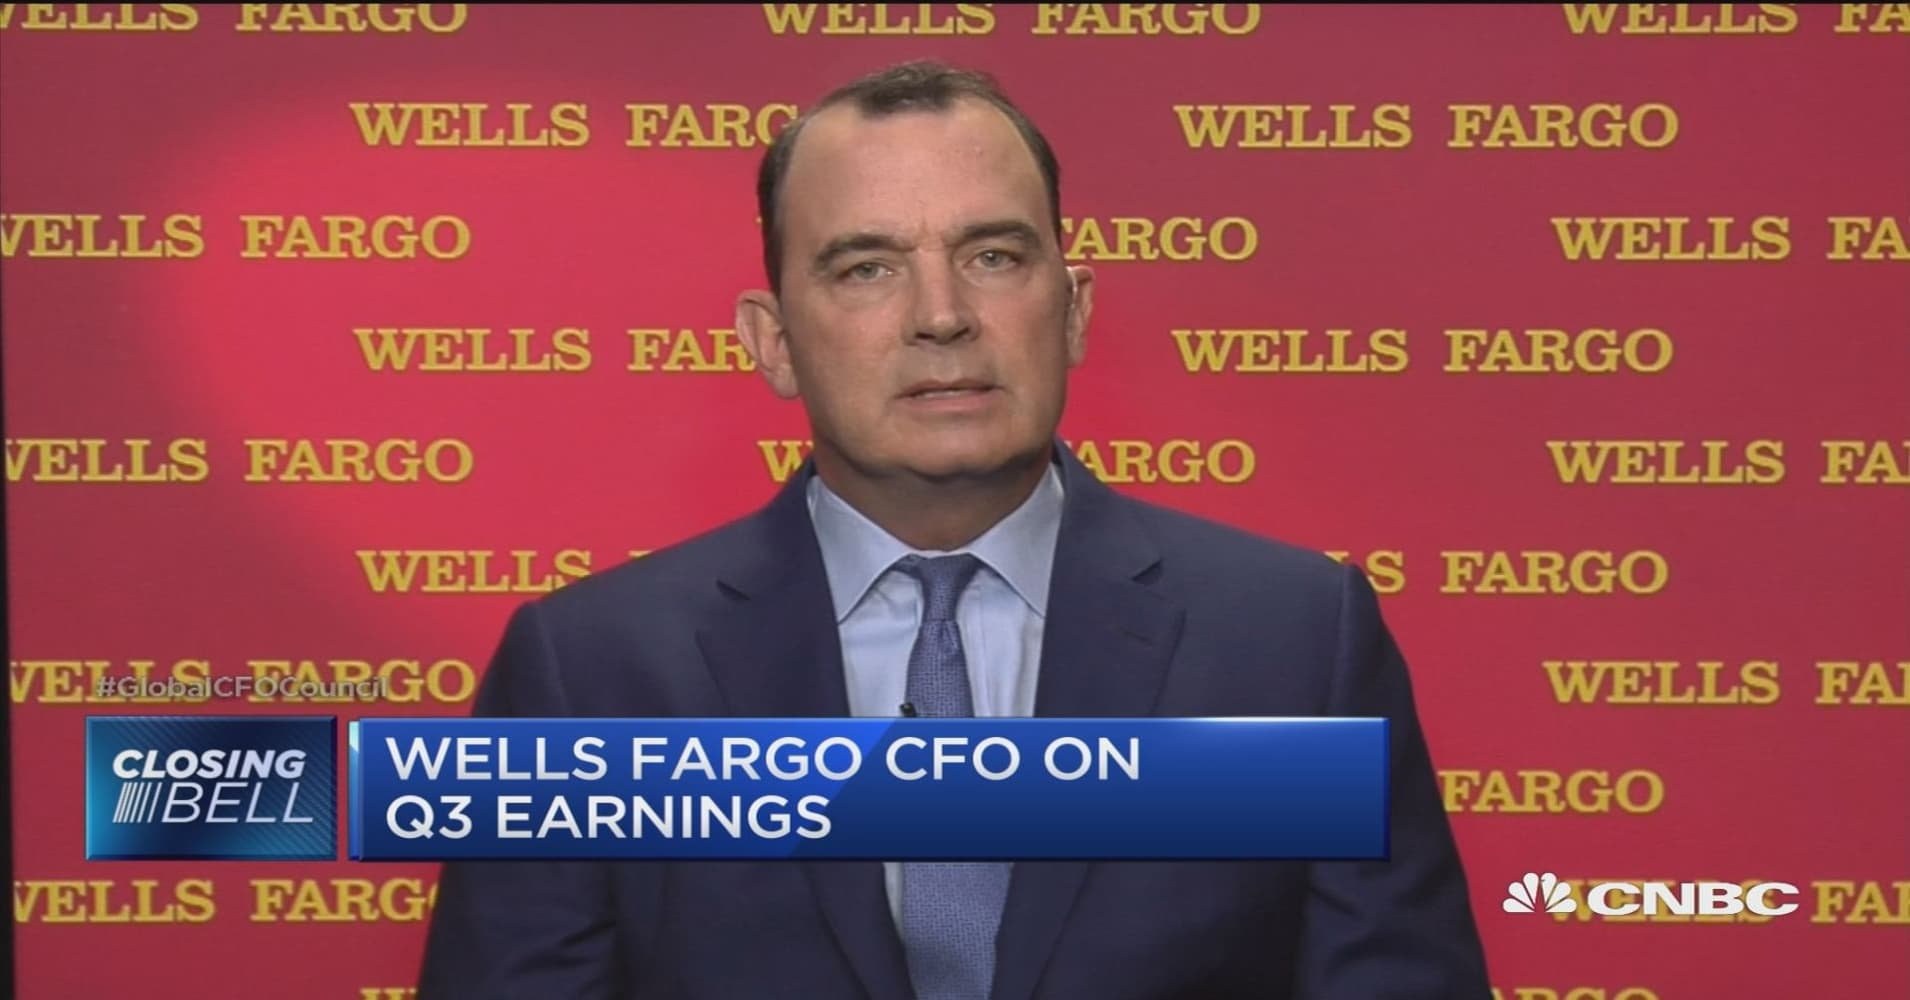 Wells Fargo CFO: This cycle has been slow to adjust on deposit pricing size